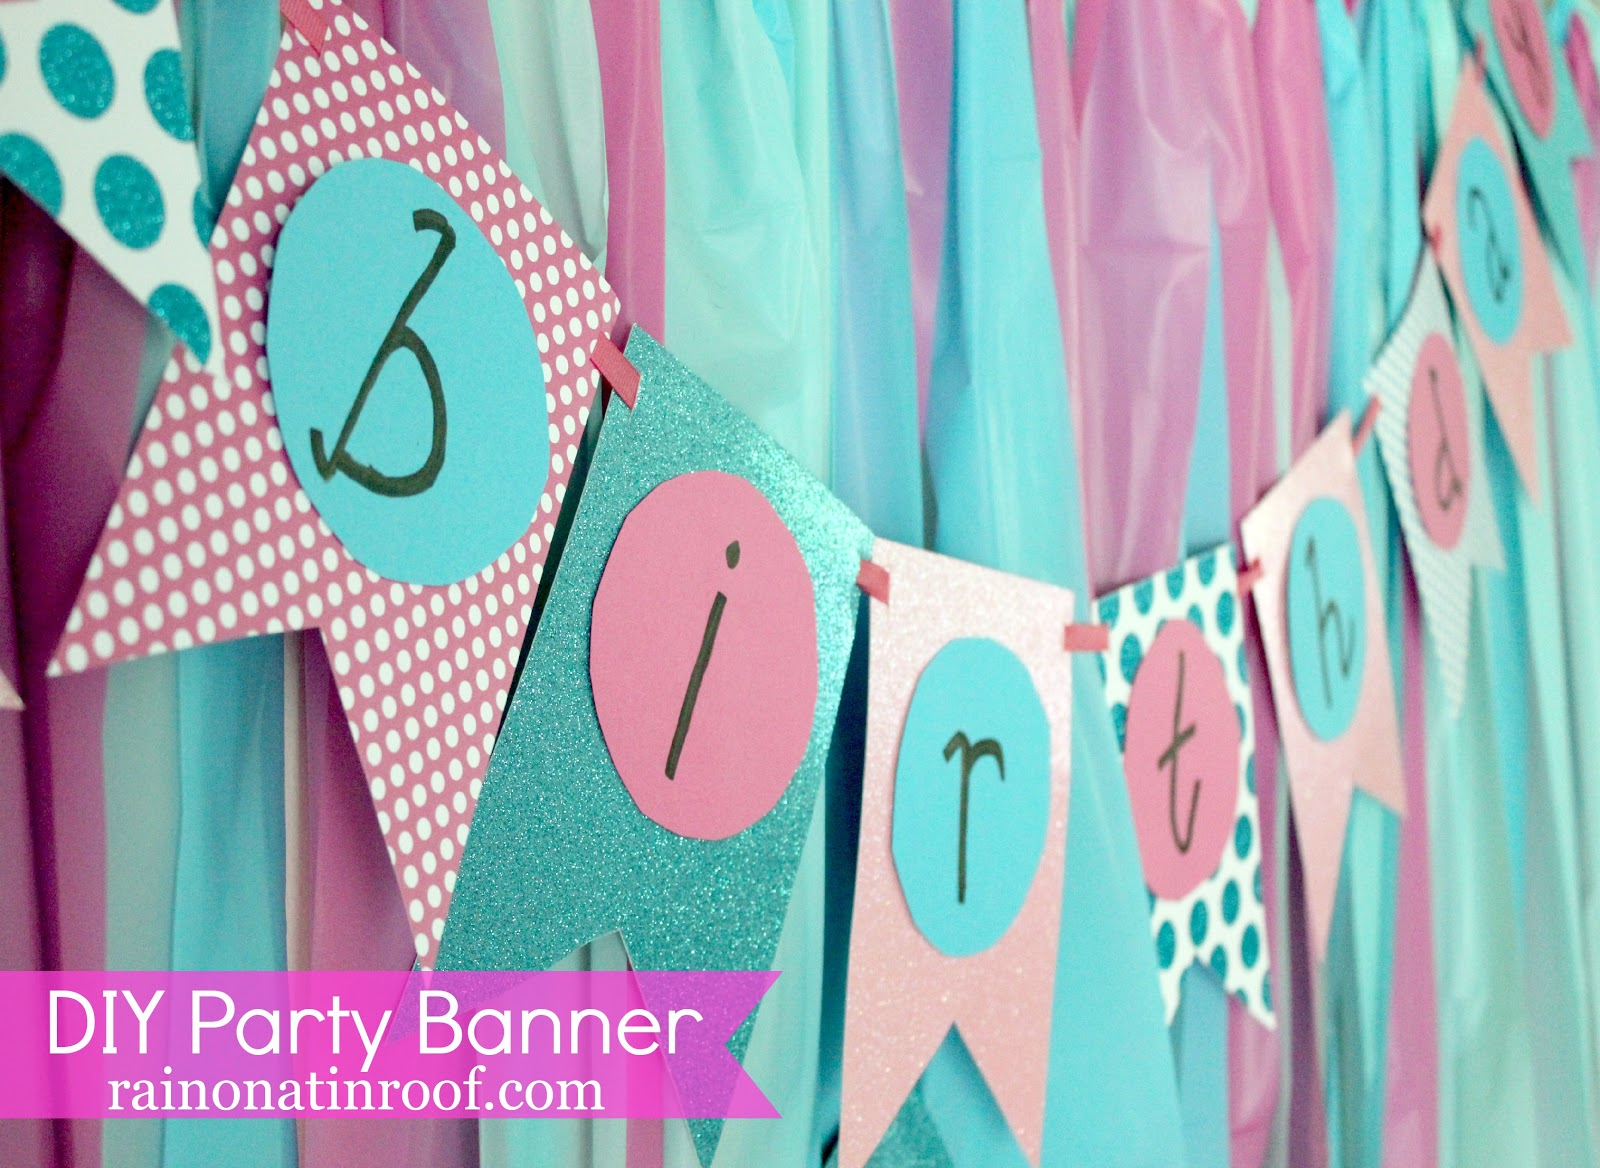 DIY Party Banner | DIY Party Banner Template | DIY Party Decorations | DIY Party Ideas & Easiest Ever DIY Birthday Banner Part 2 - Rain on a Tin Roof